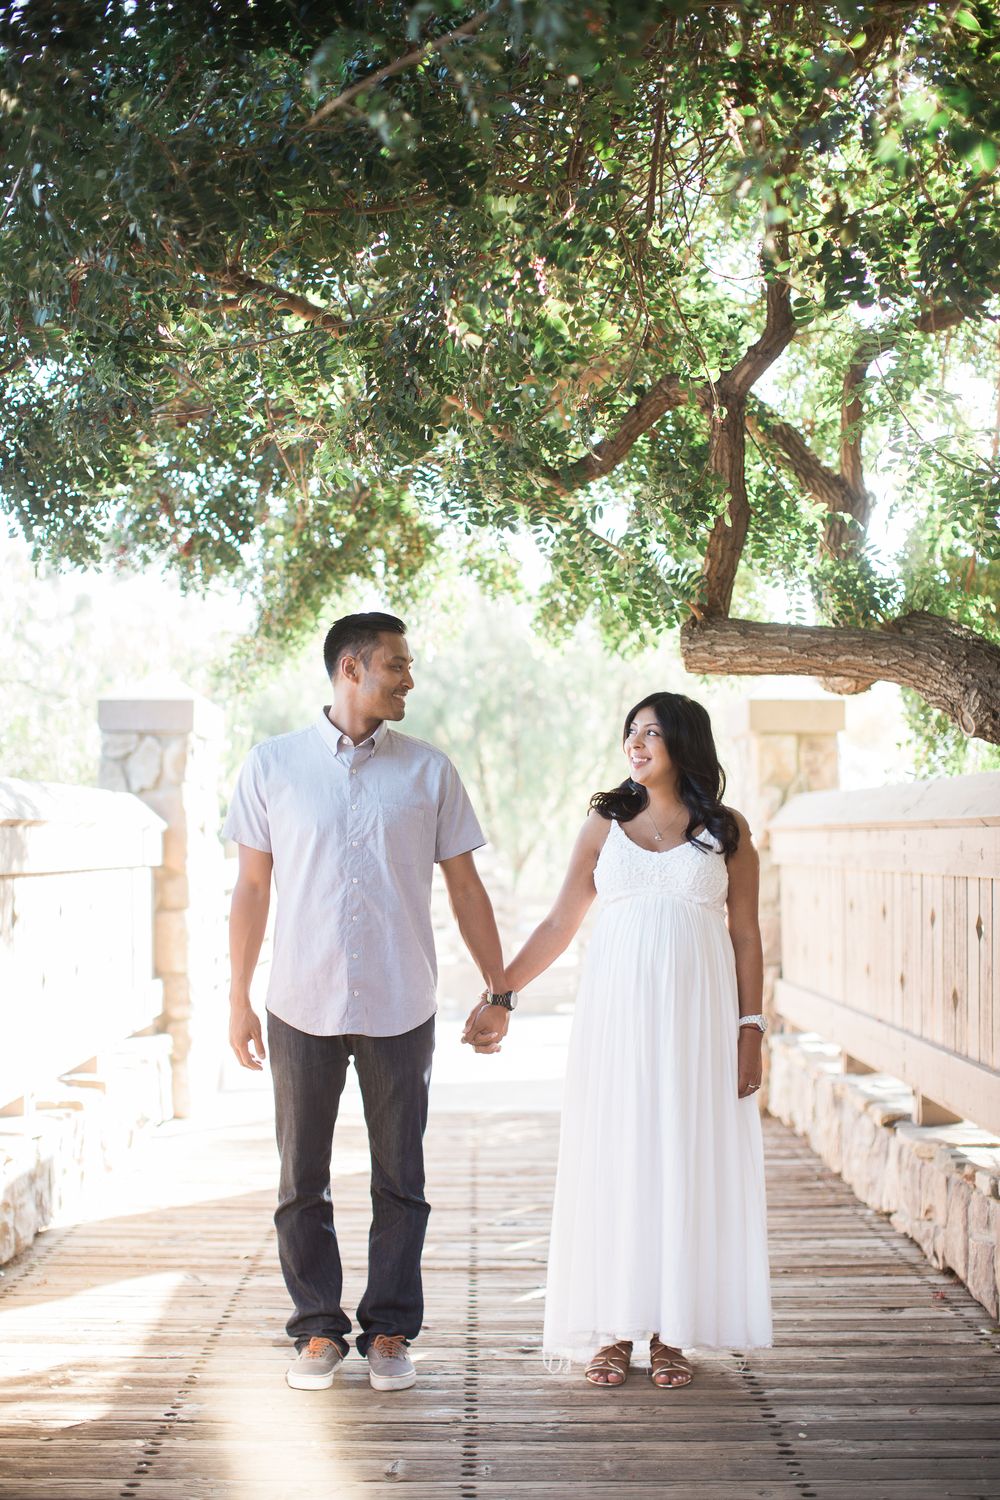 Marcella_Maternity_Cerritos_BrandonJFerlin_Photography-2.jpg